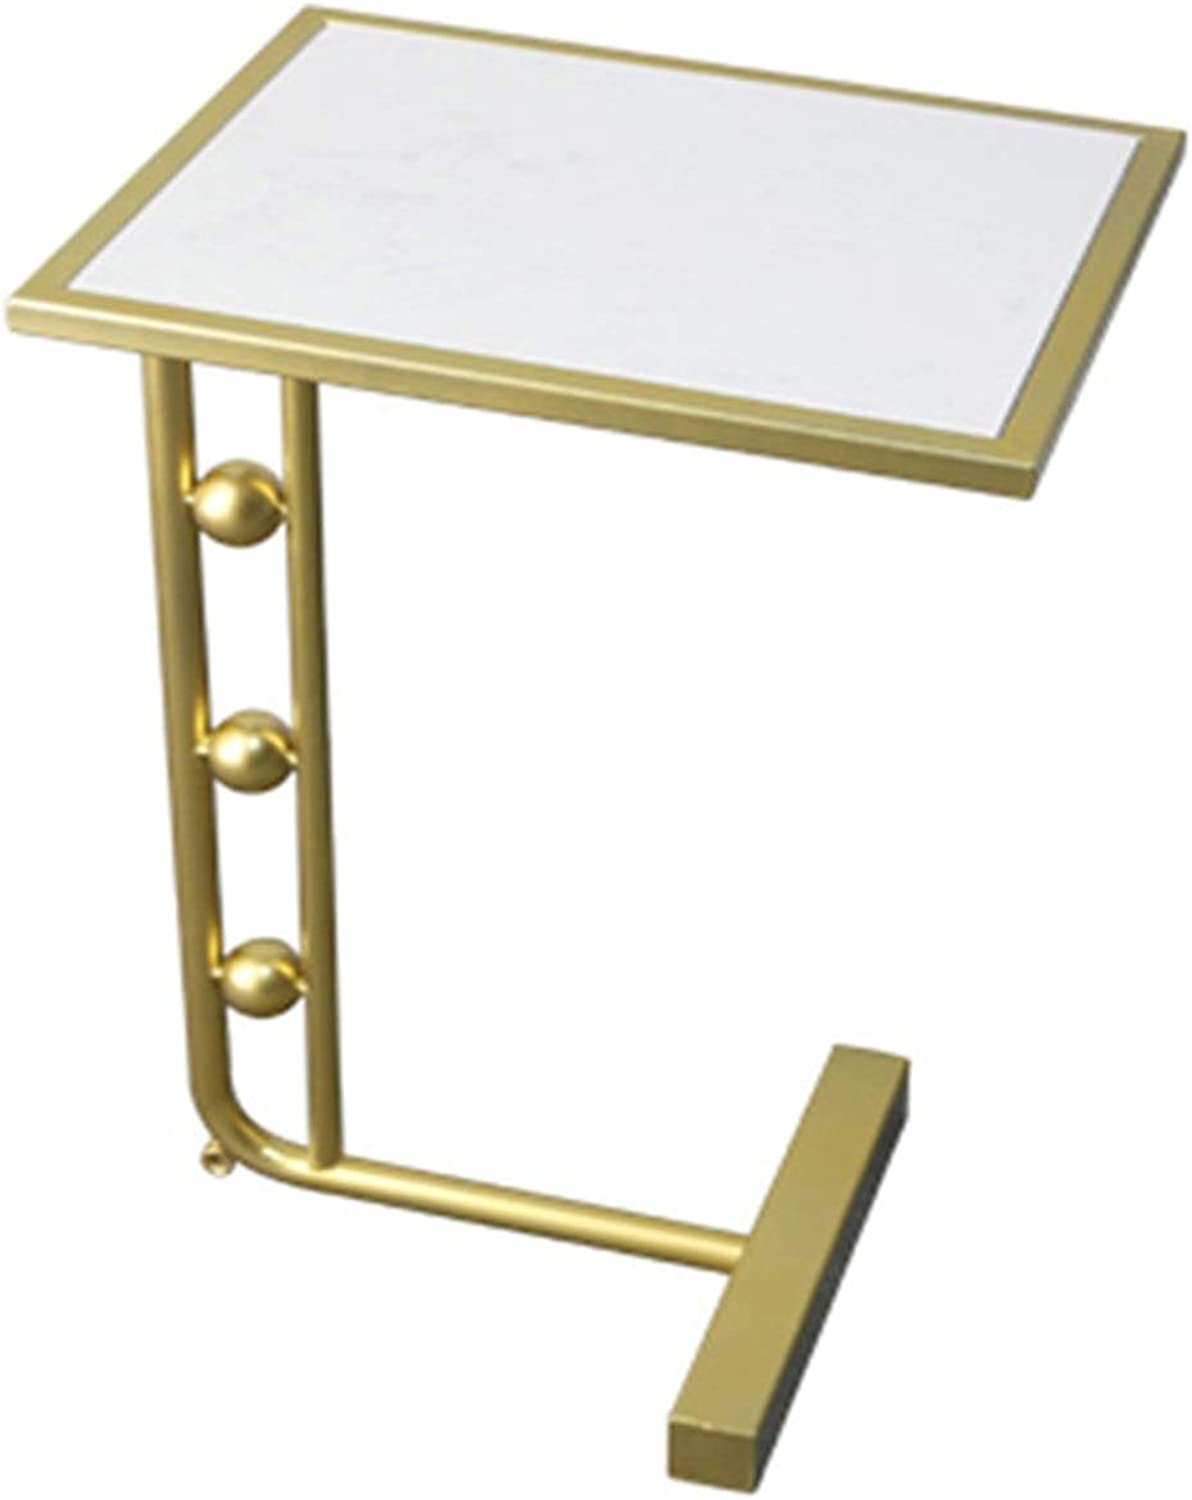 Wrought Iron Side Table Marble Coffee Table, Simple Modern Living Room Sofa Corner A Few Corner Small Coffee Table, Square, gold (38 × 30 × 60cm)